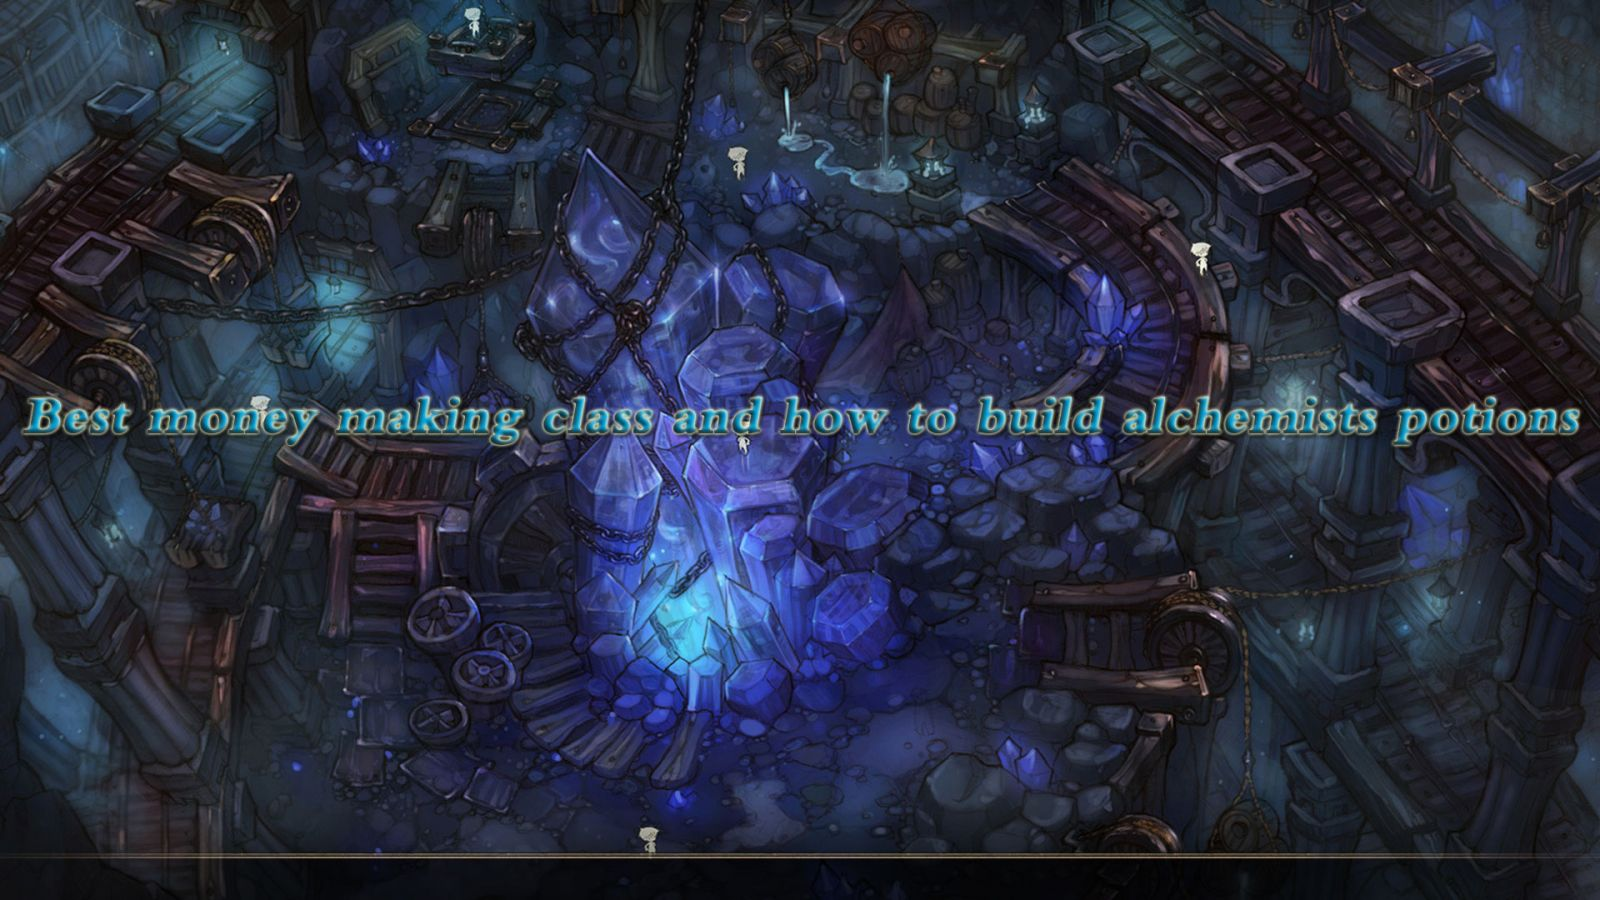 Best money making class and how to build alchemists potions